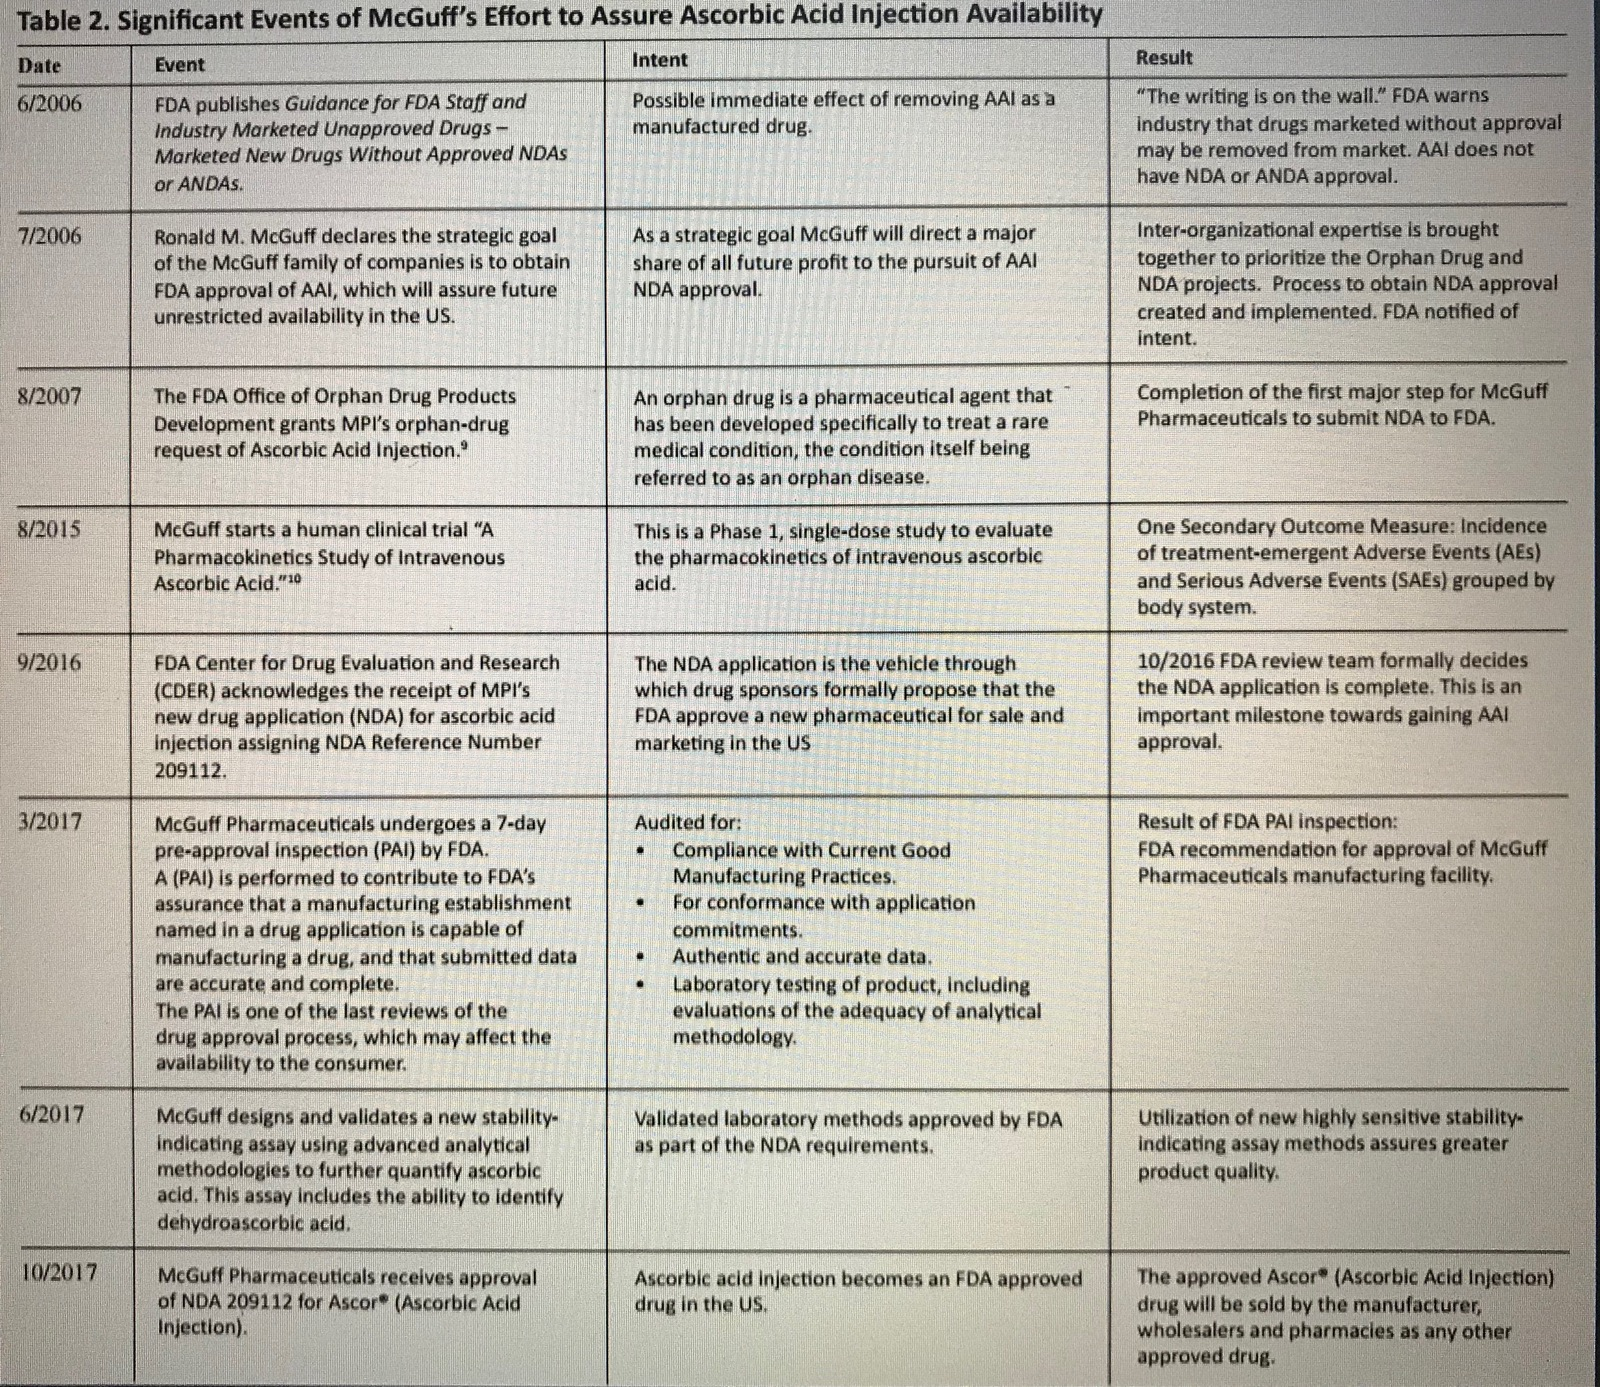 Table 2.  Significant events of McGuff's efforts to assure Ascorbic Acid Injection availability